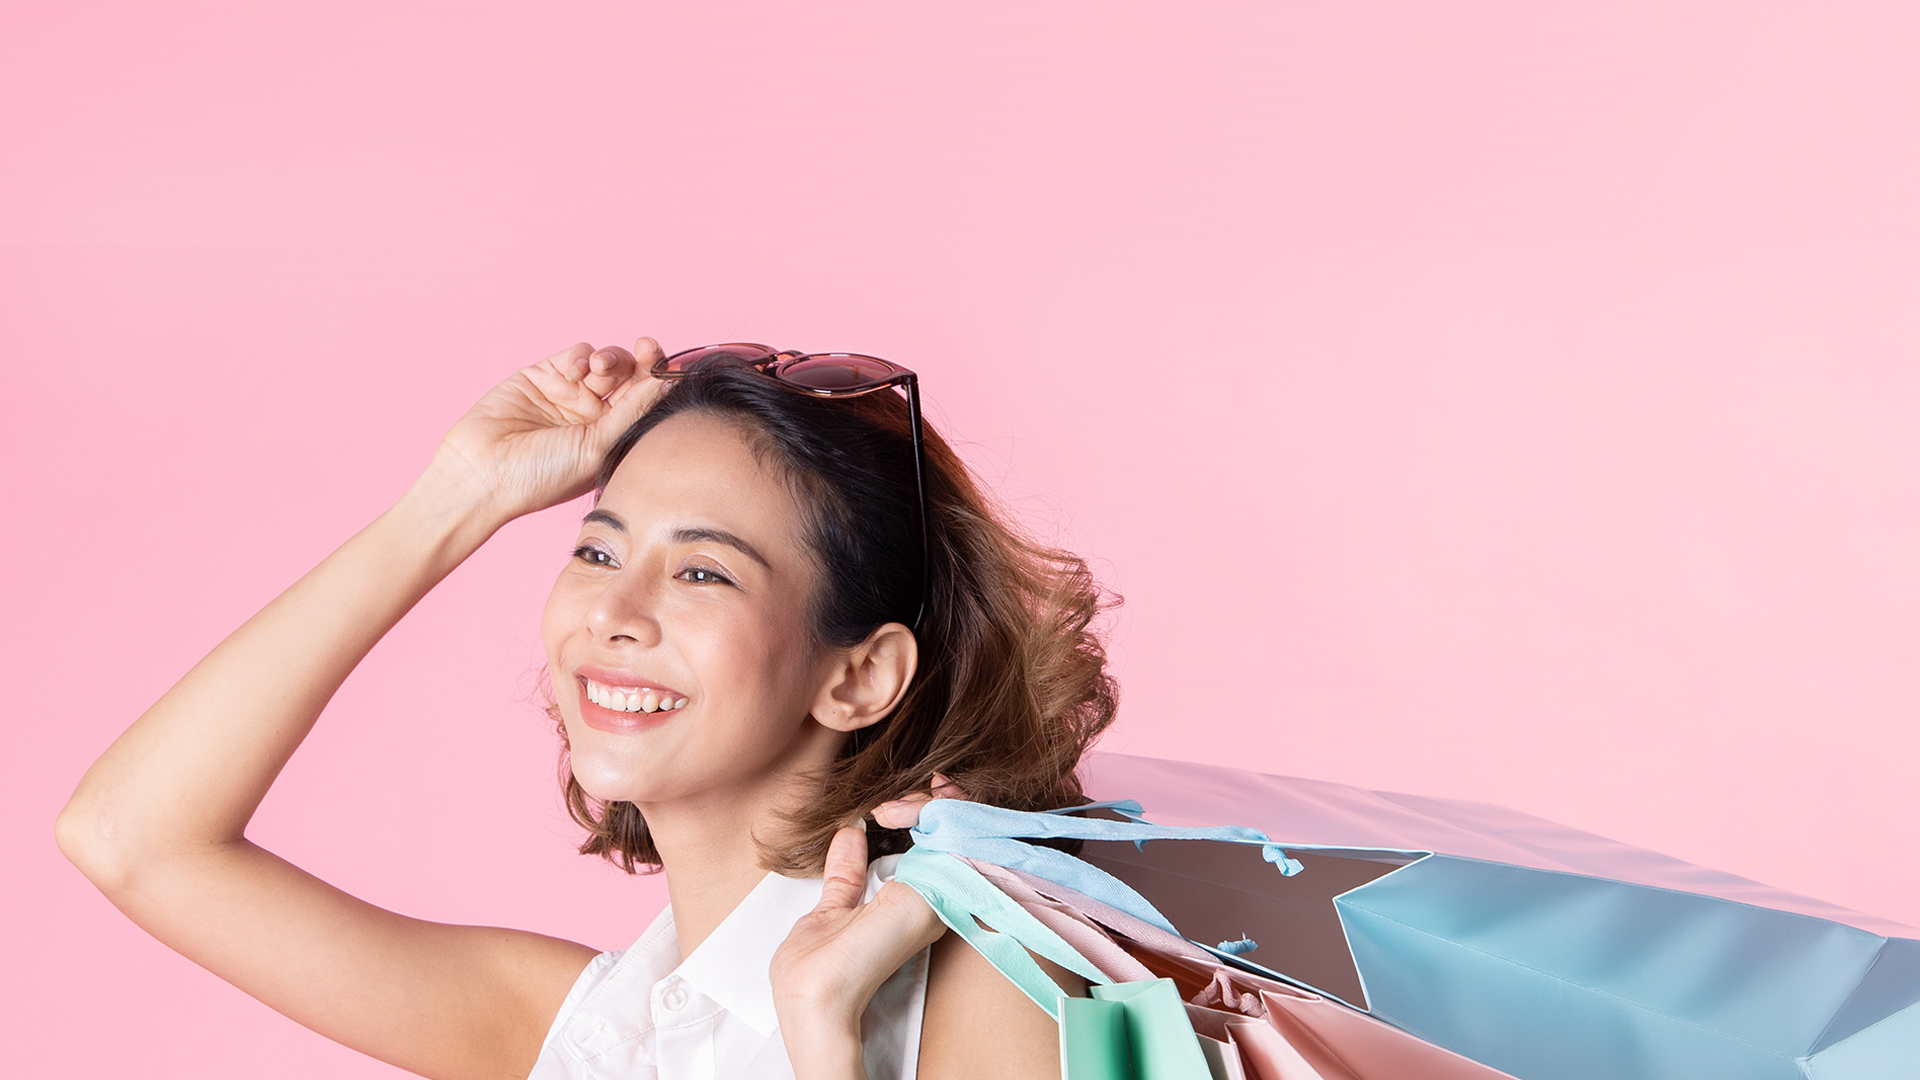 Seize future opportunities with holiday campaigns in Asia